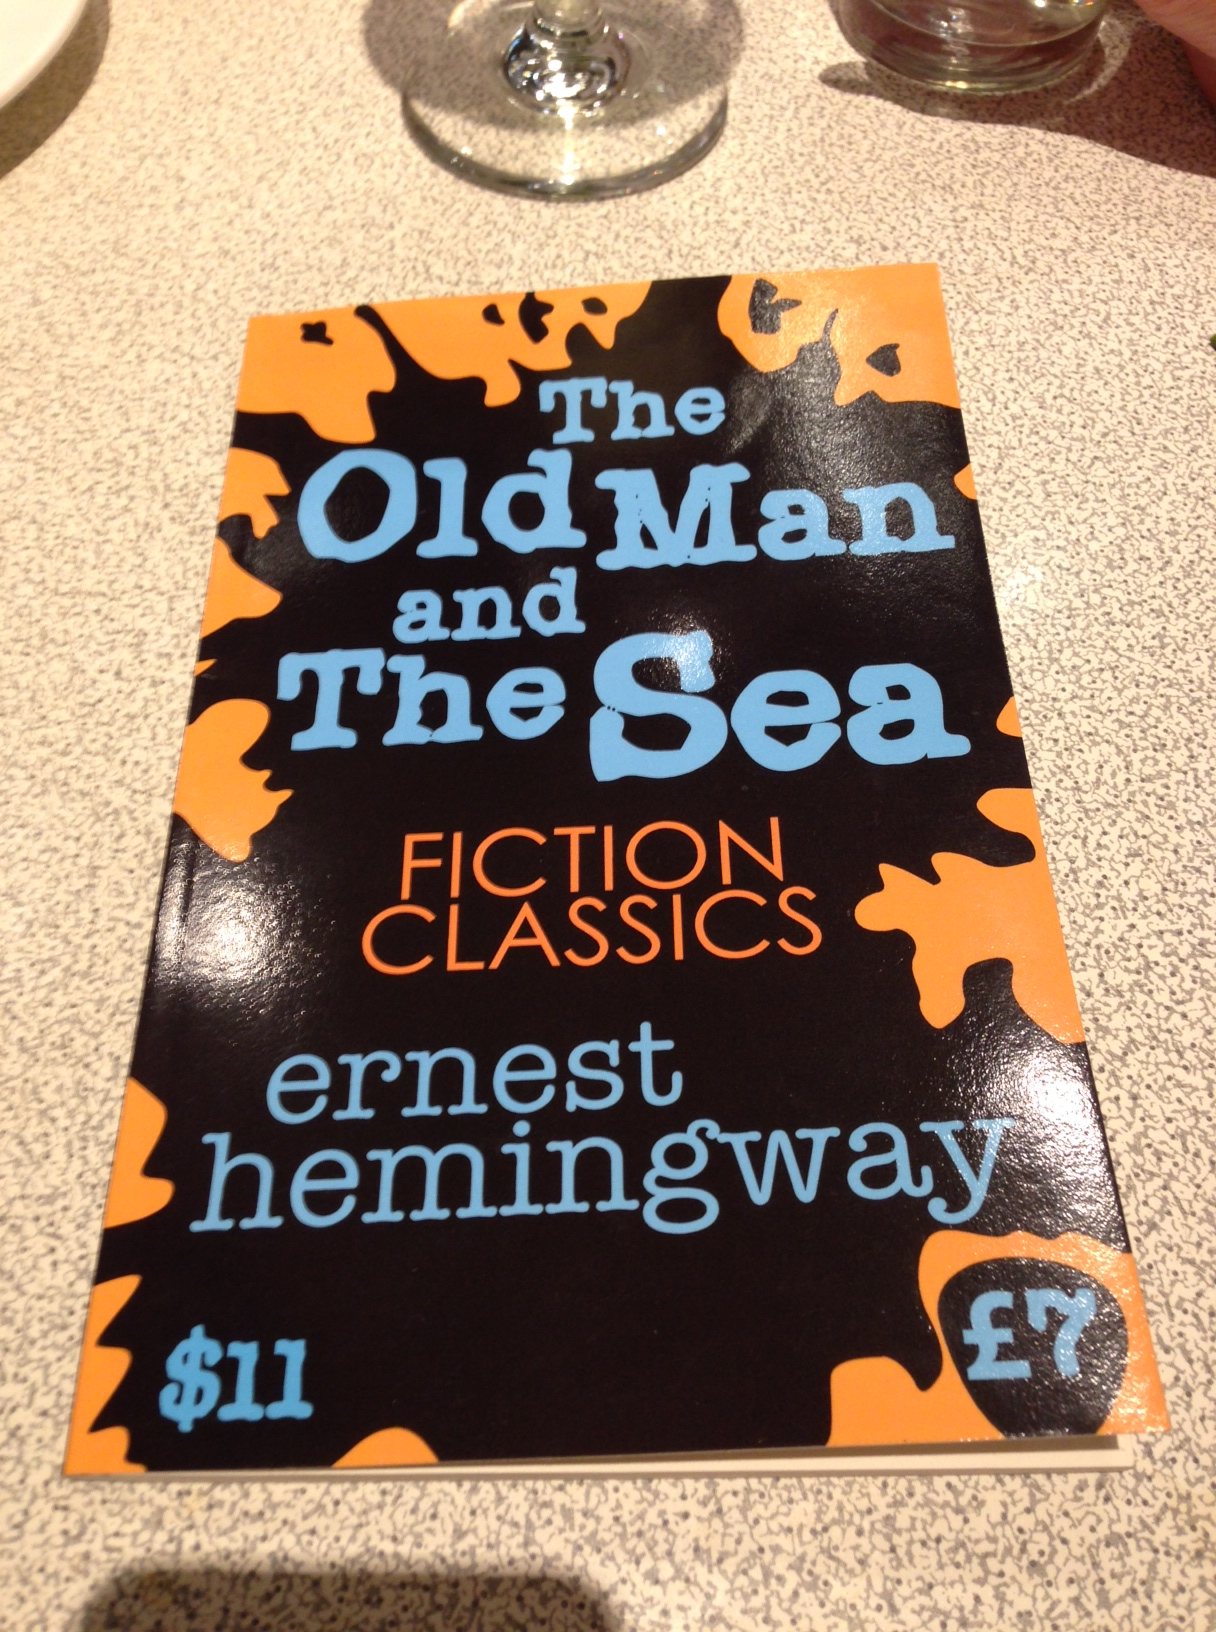 a report on the old man and the sea a short novel by ernest hemingway Hemingway on fishing  the old man and the sea  the last novel ernest hemingway saw published, the old man and the sea has proved itself to.